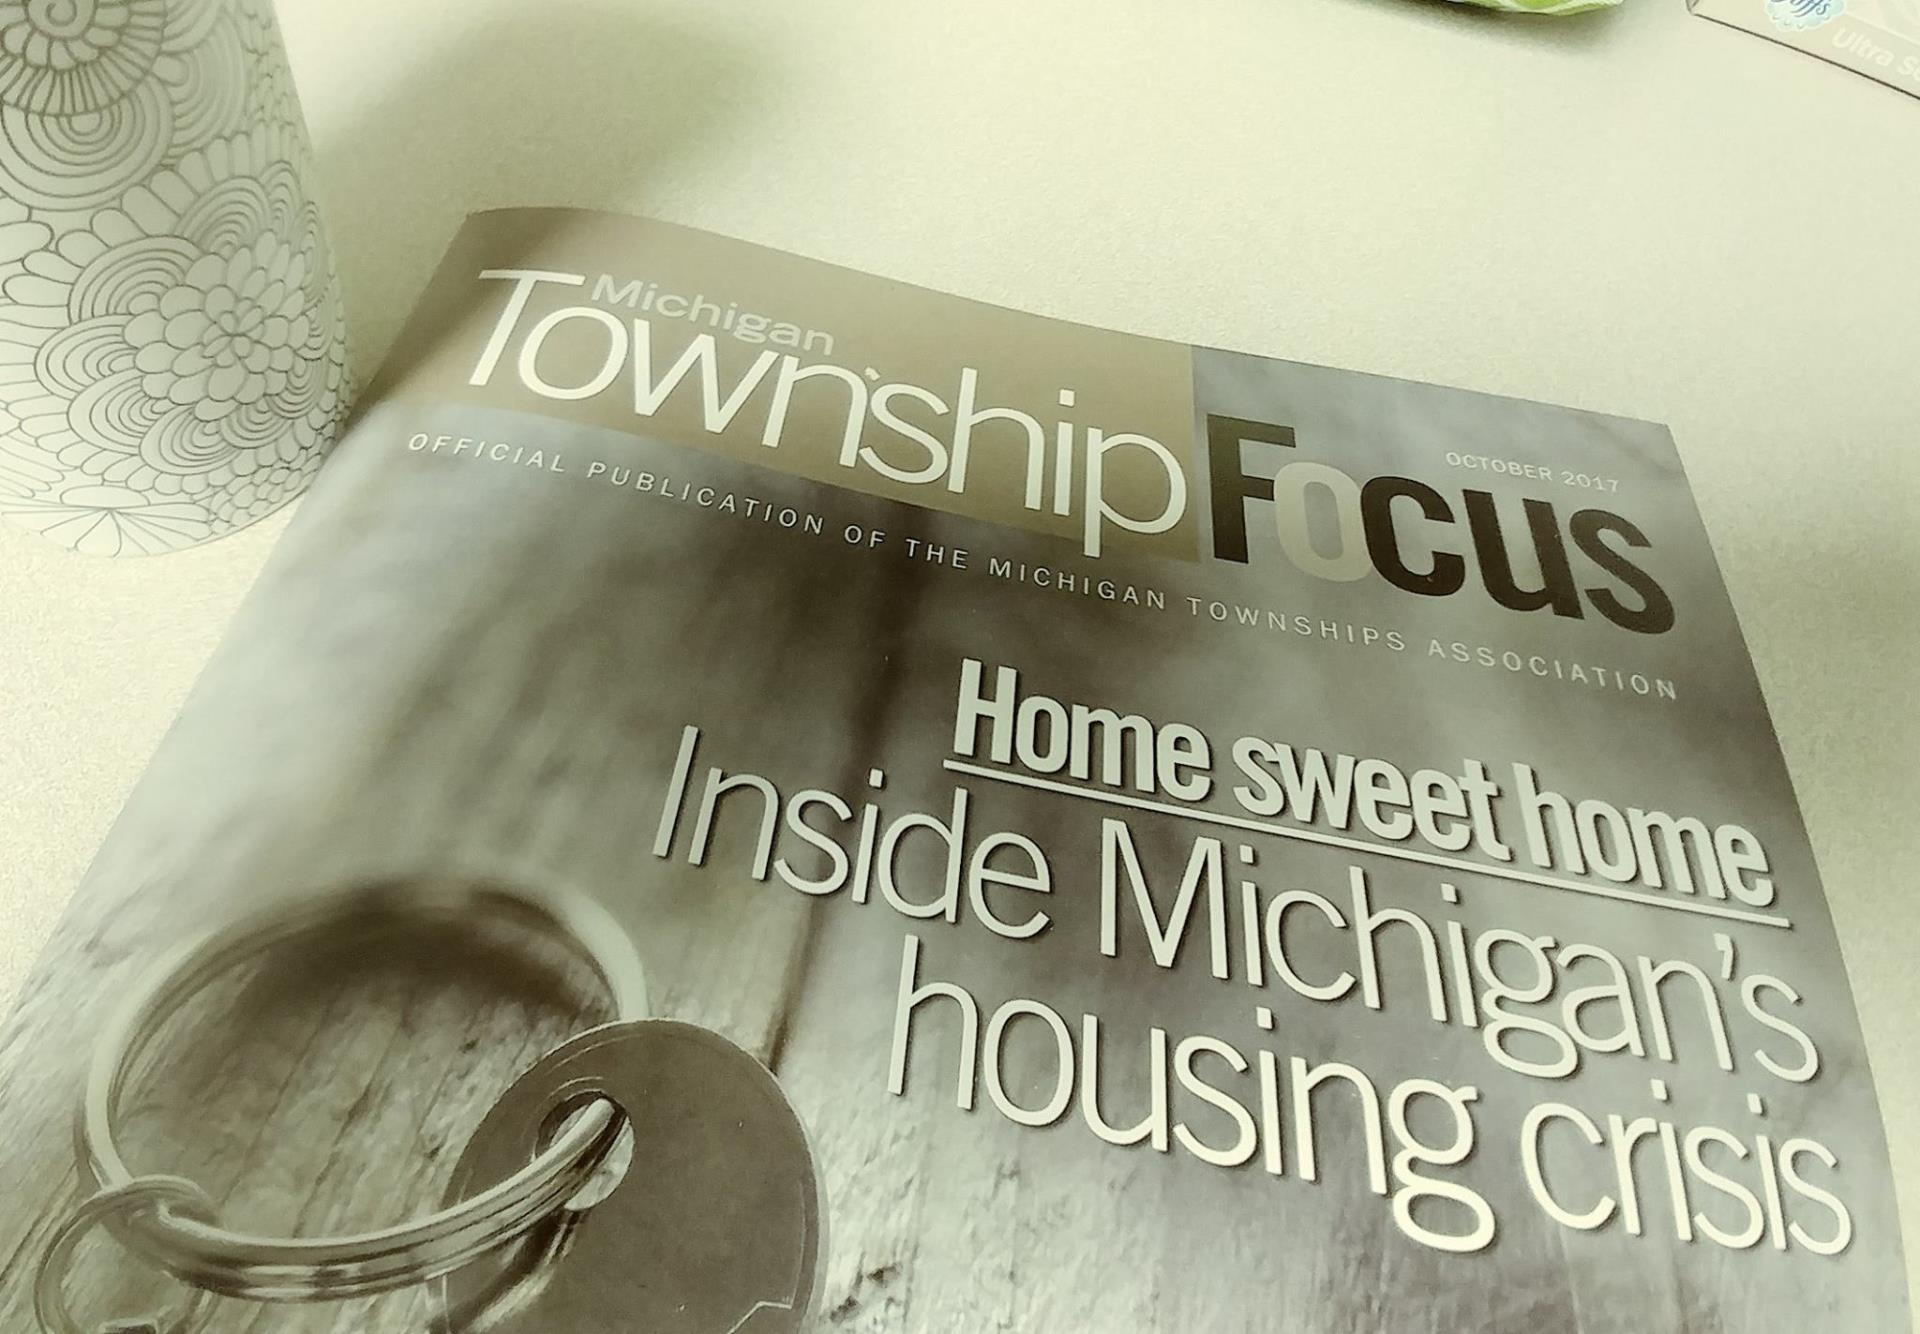 Township In Focus - Michigan Townships Association